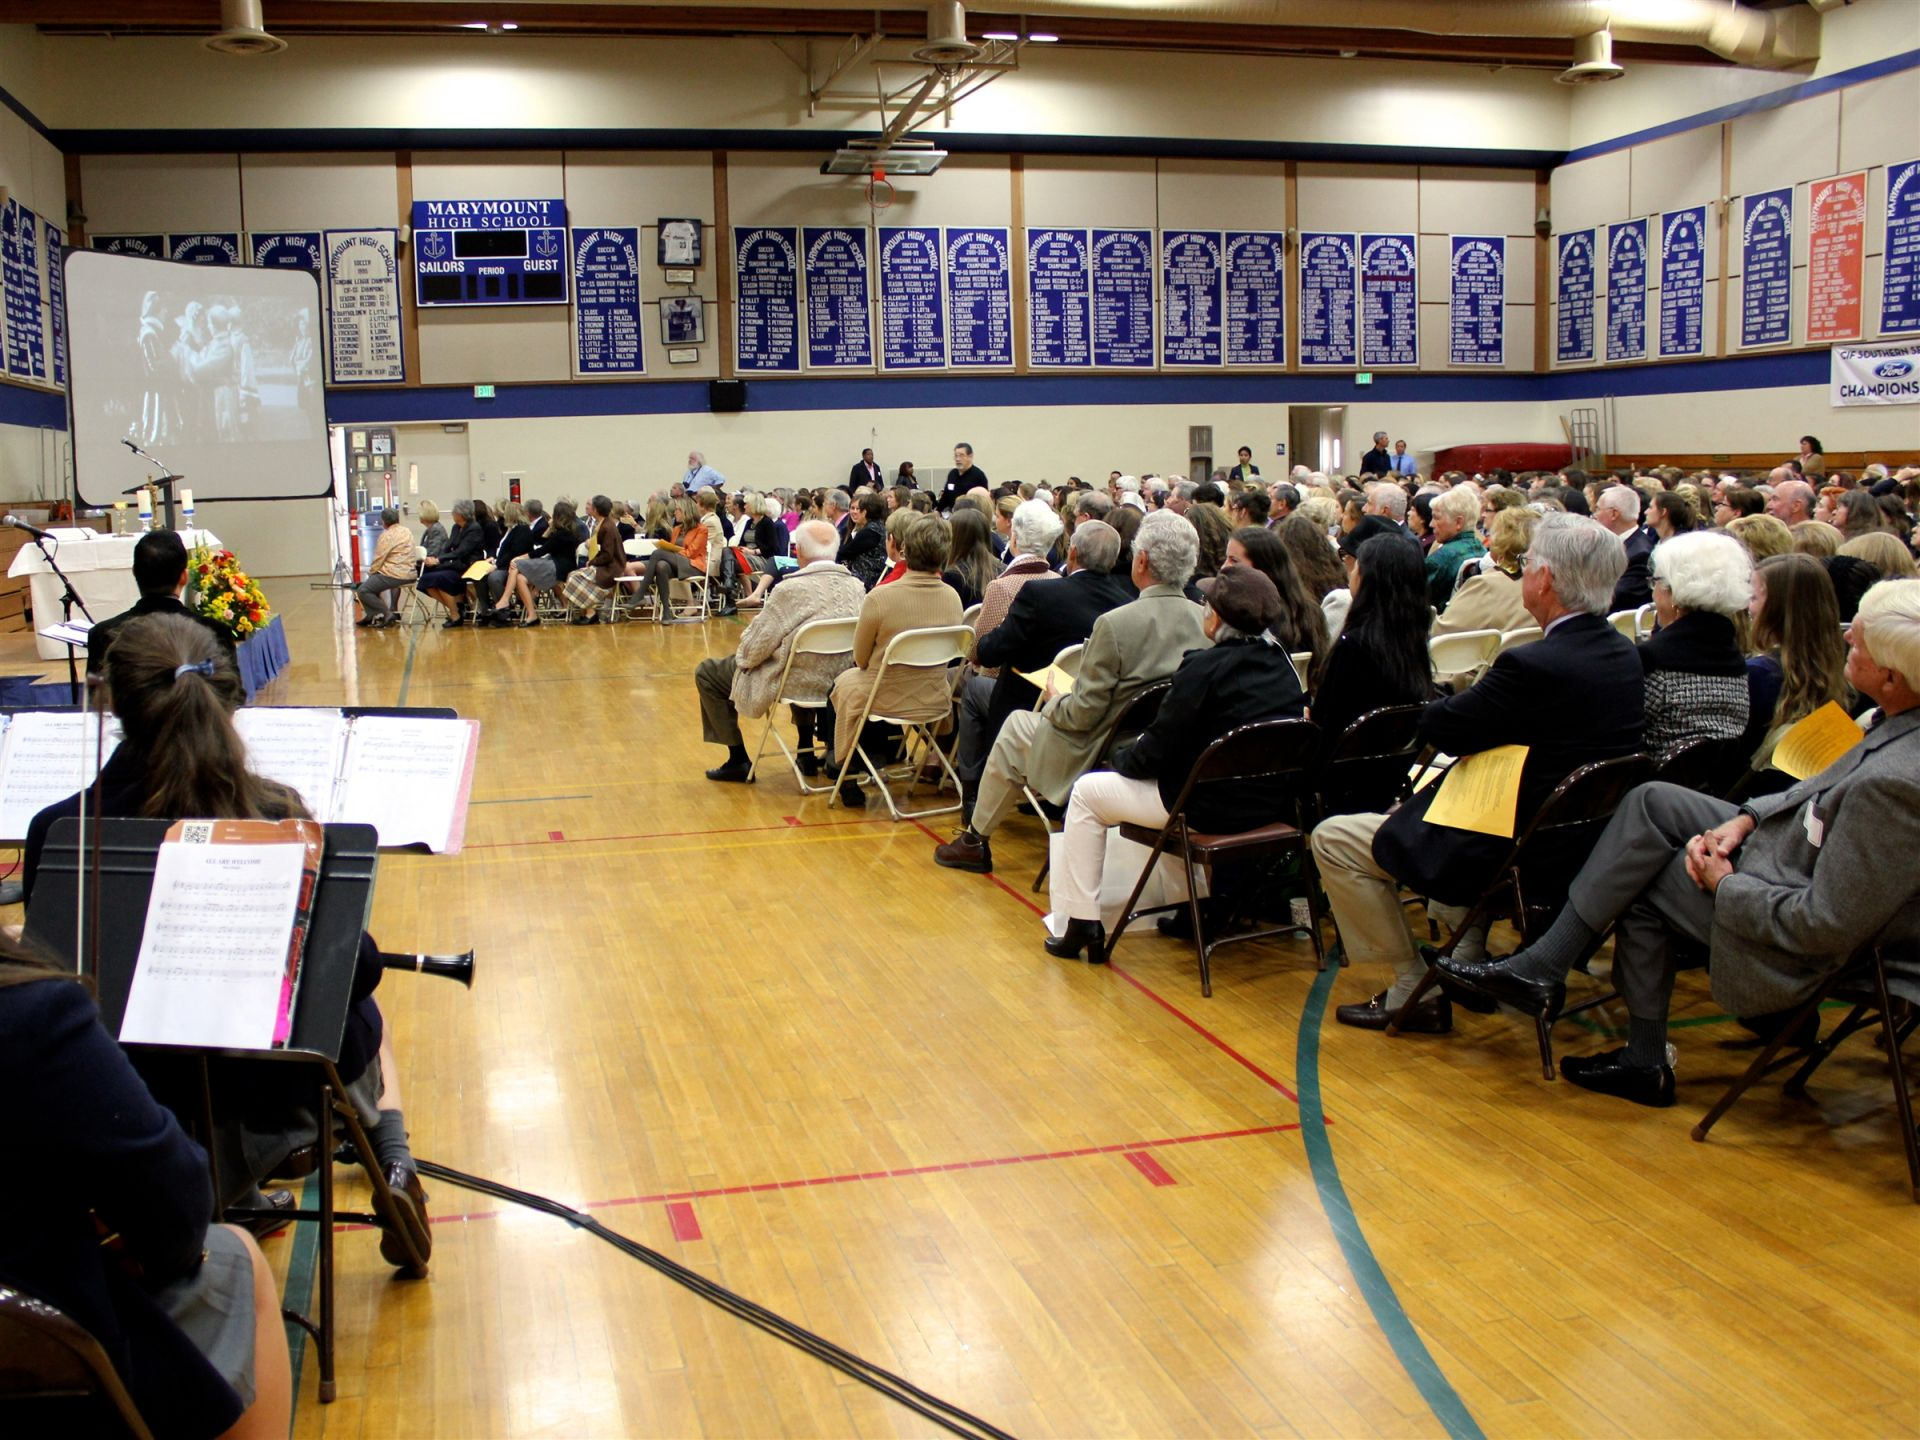 Or you may see an all-school Mass, like this one happening on Grandparents Visiting Day.